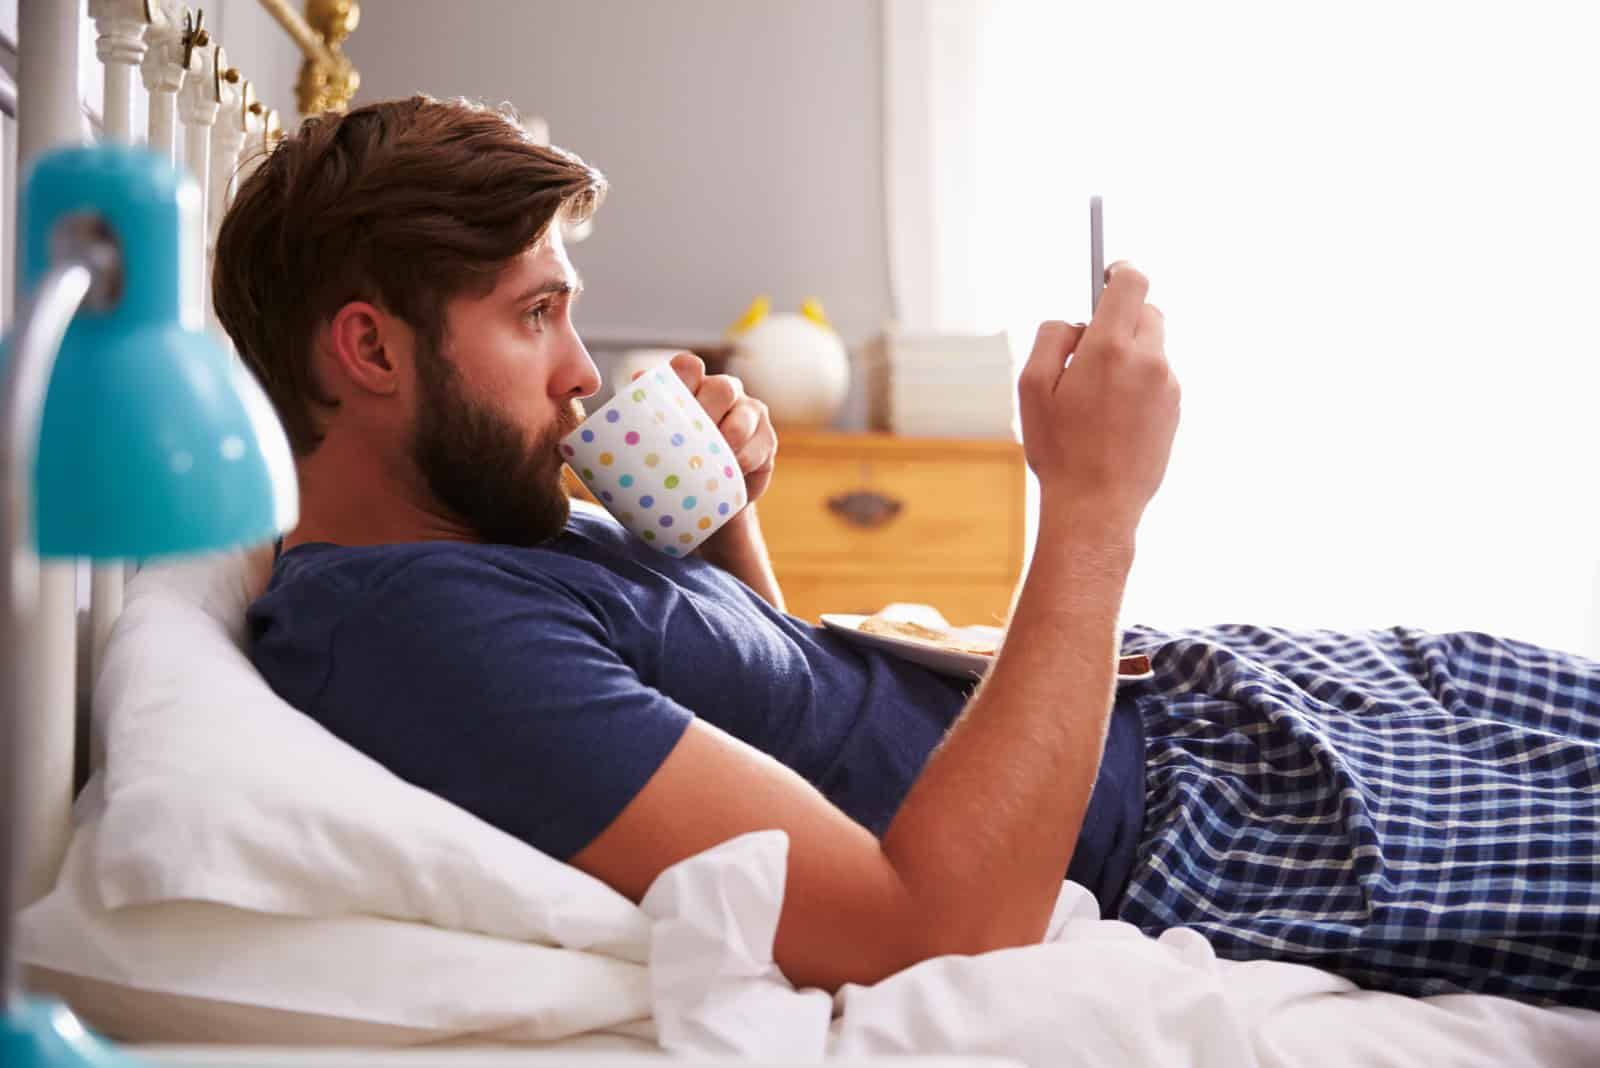 a man lies on the bed drinking coffee and pressing a phone